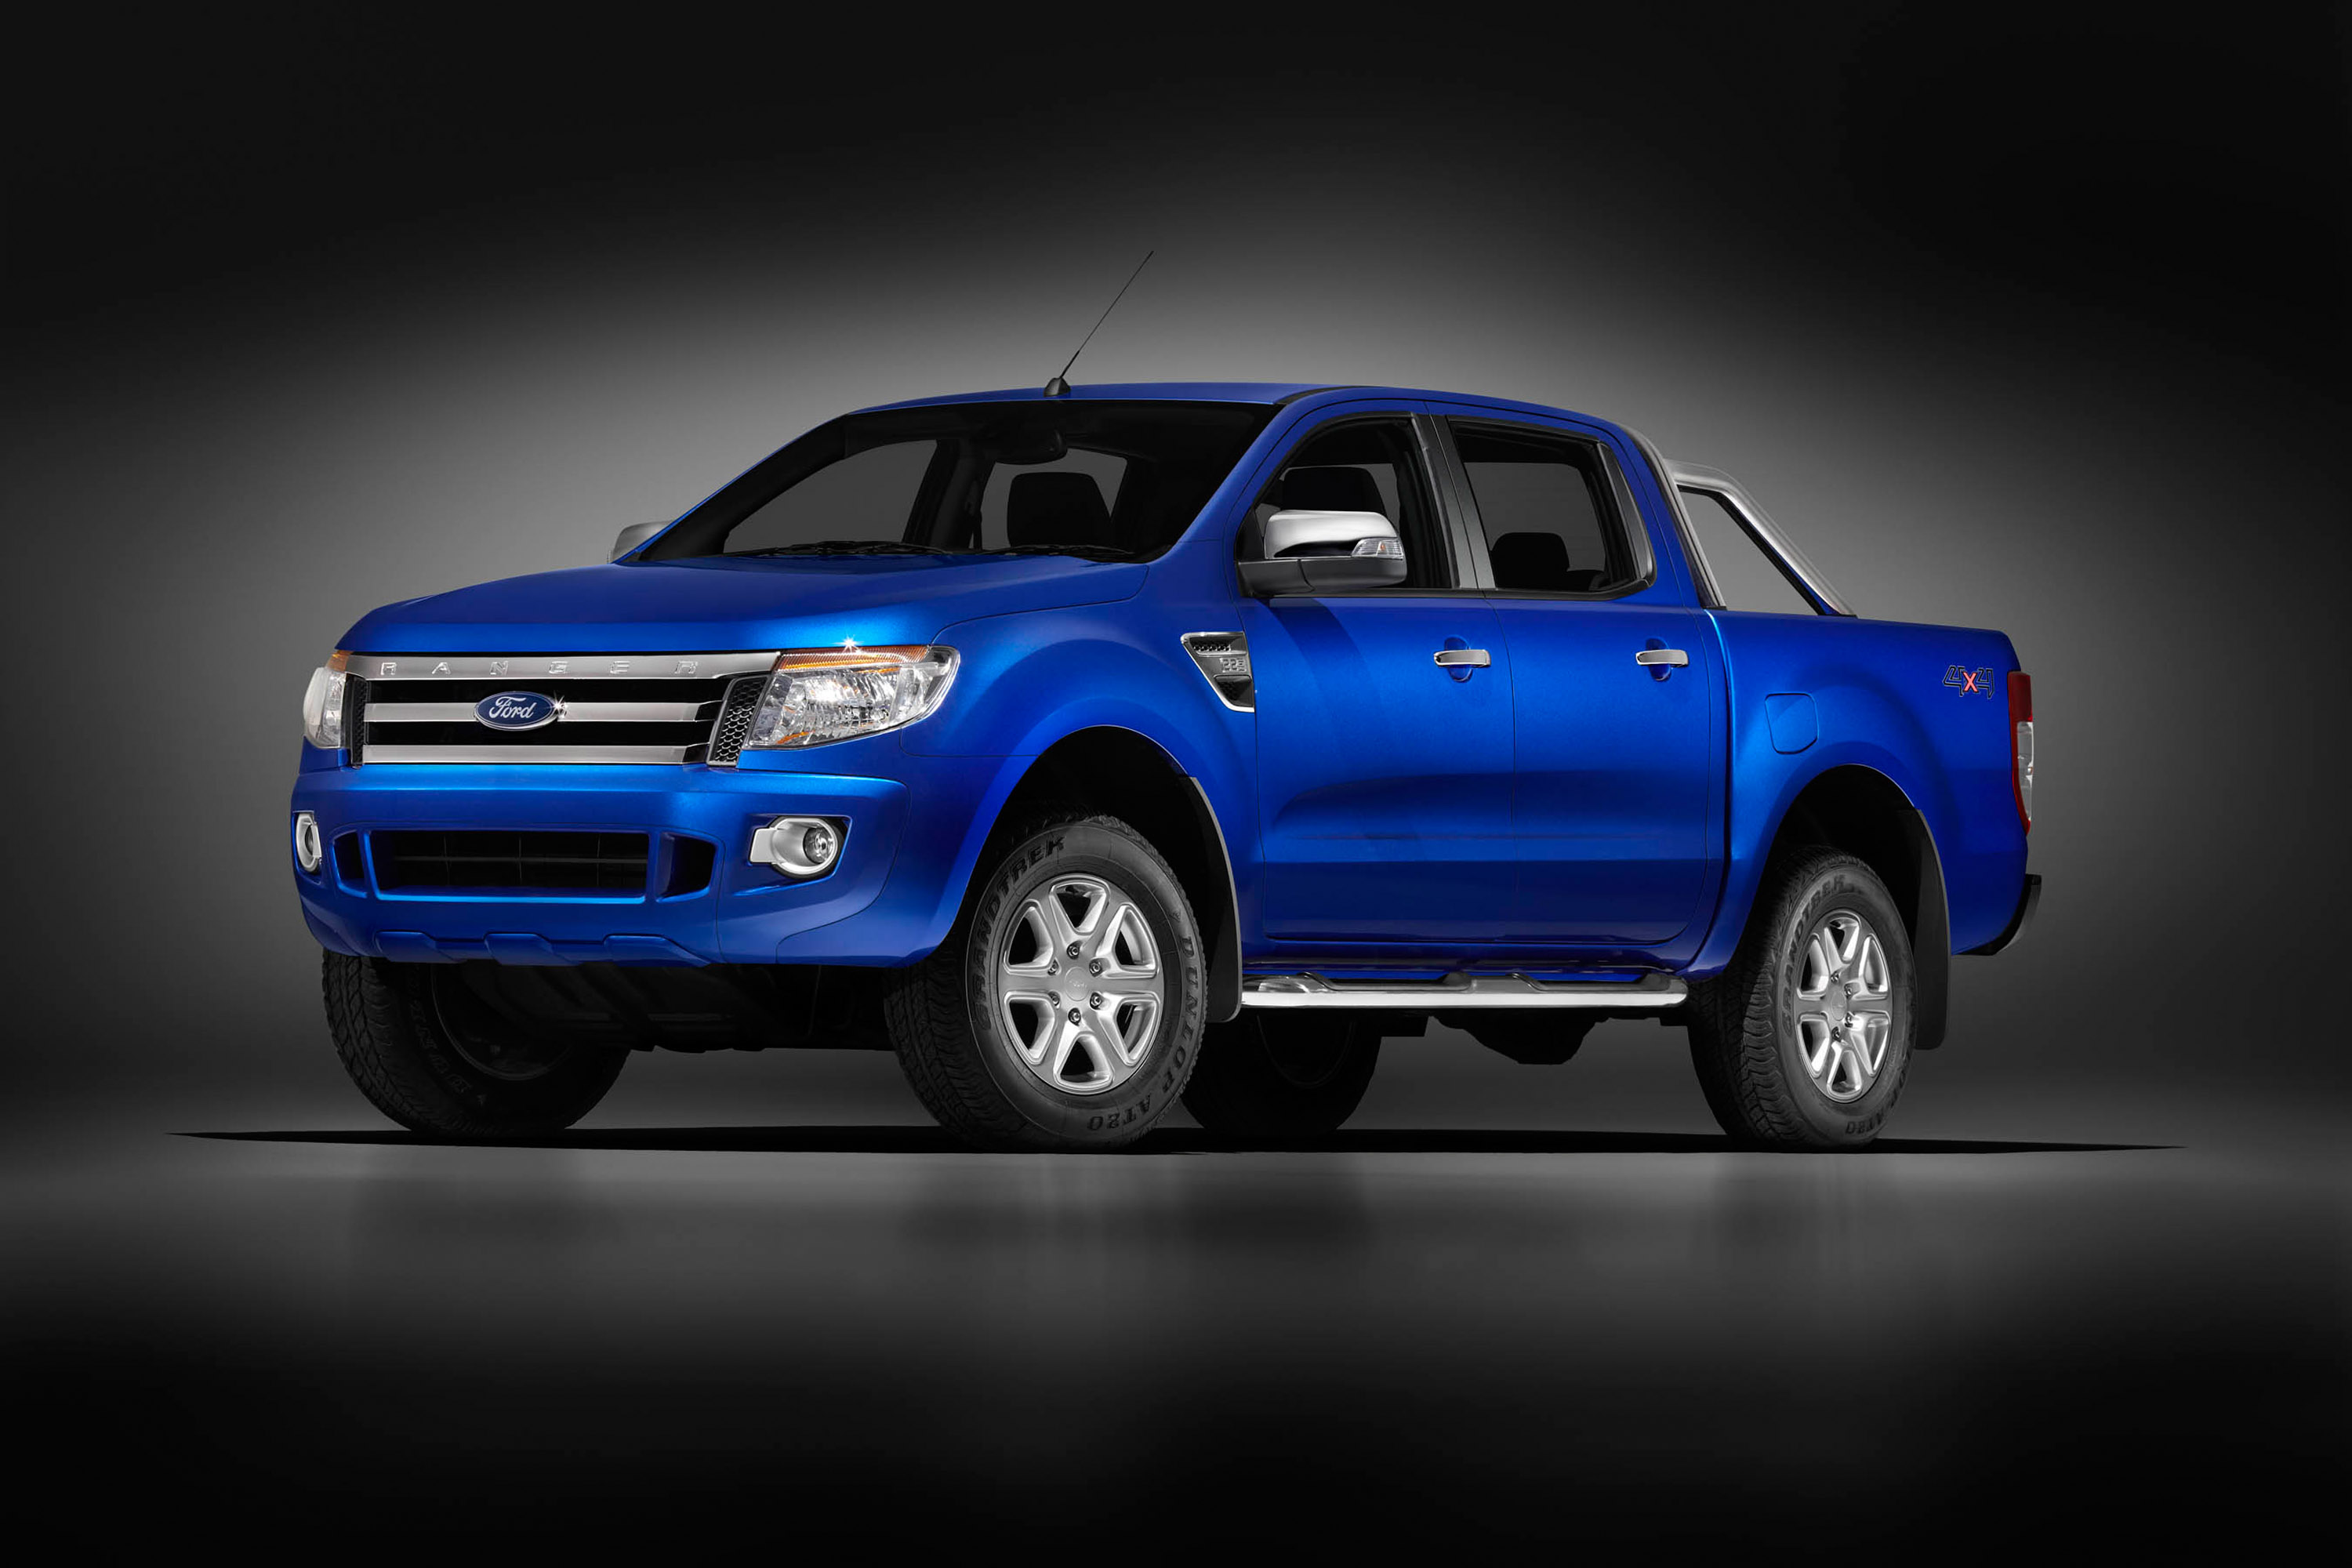 2011 Ford Ranger Wildtrak Picture 52471